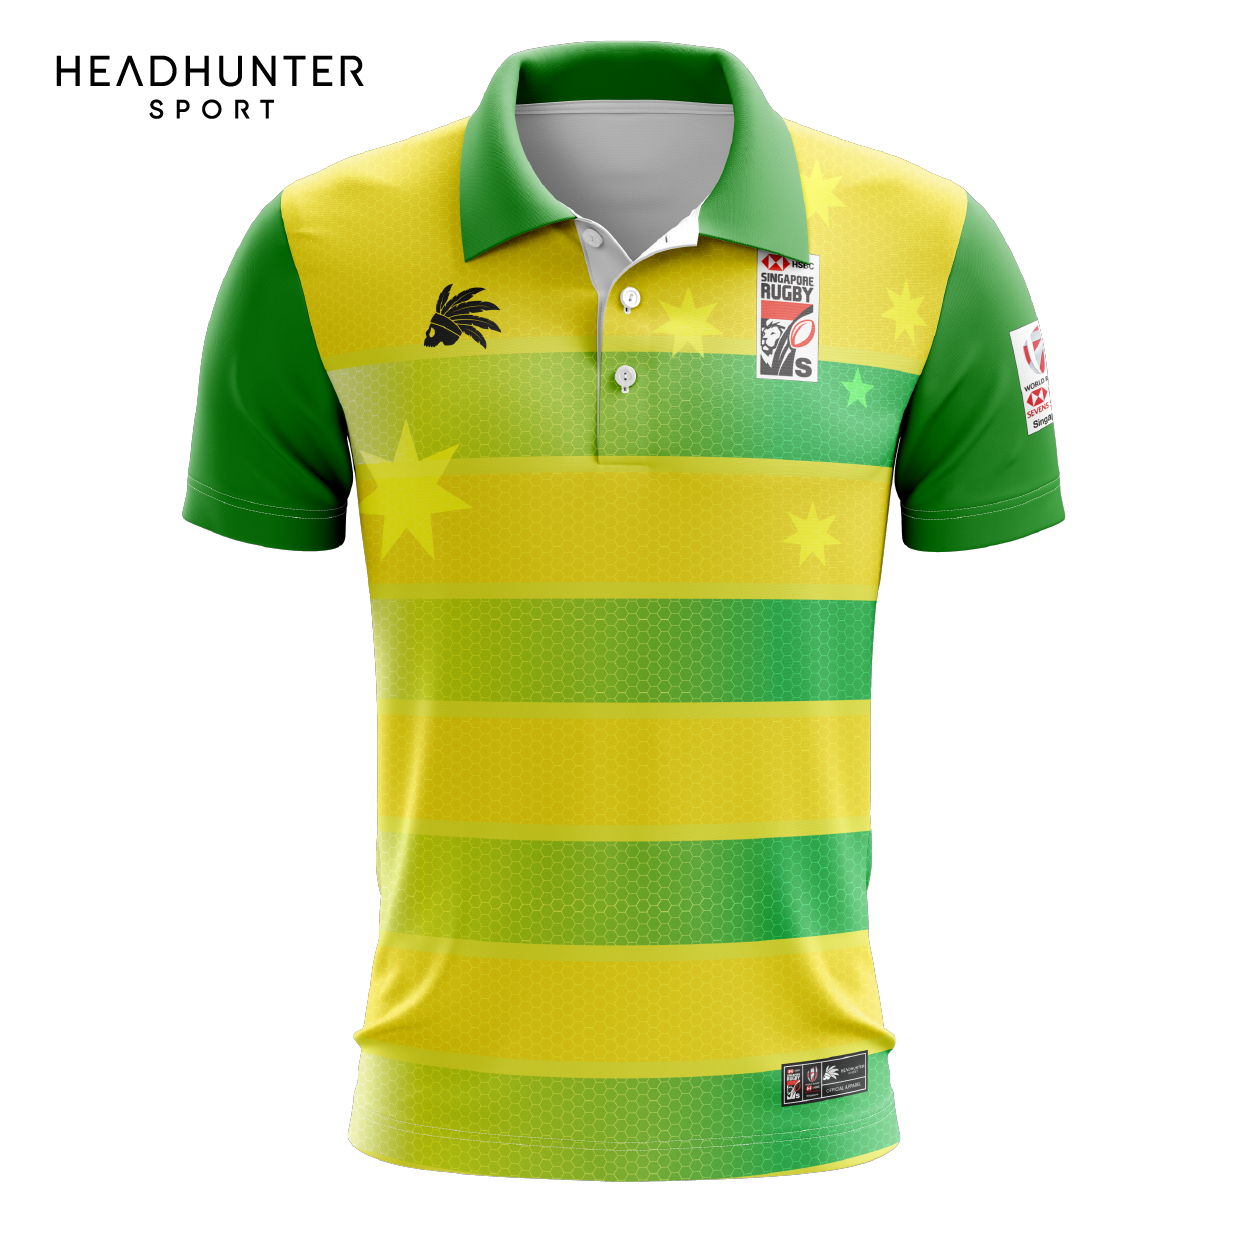 HSBC RUGBY 7S SERIES SINGAPORE 2019 MERCHANDISE AUSTRALIA POLO